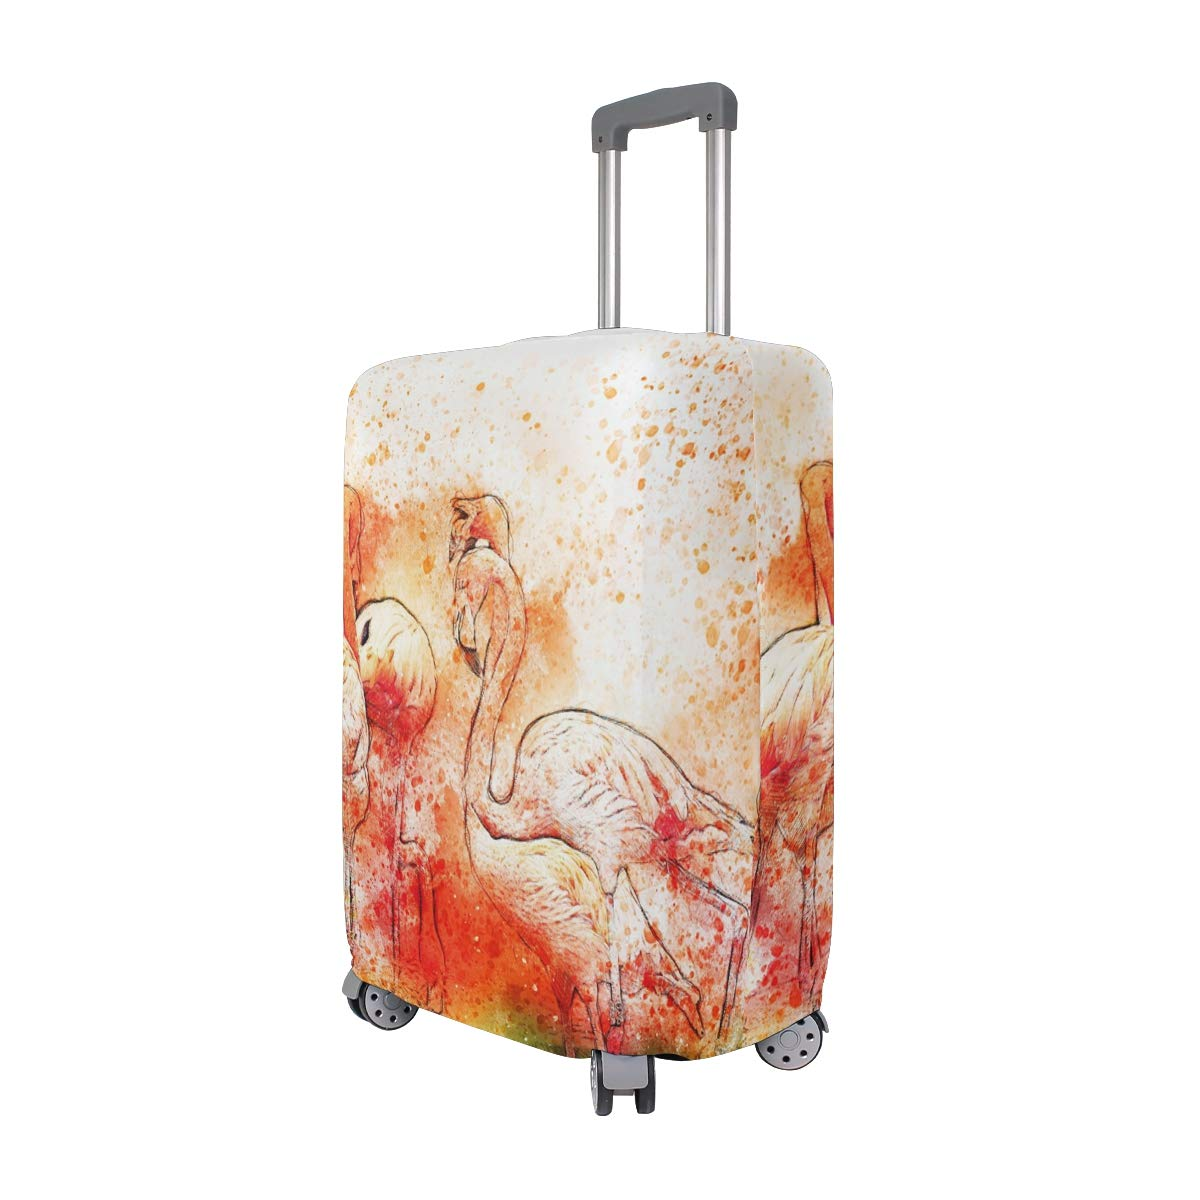 Bird Flamingos Feathers Watercolor Animal Colorful suitcase cover elastic suitcase cover zipper luggage case removable cleaning suitable for 29-32 trunk cover